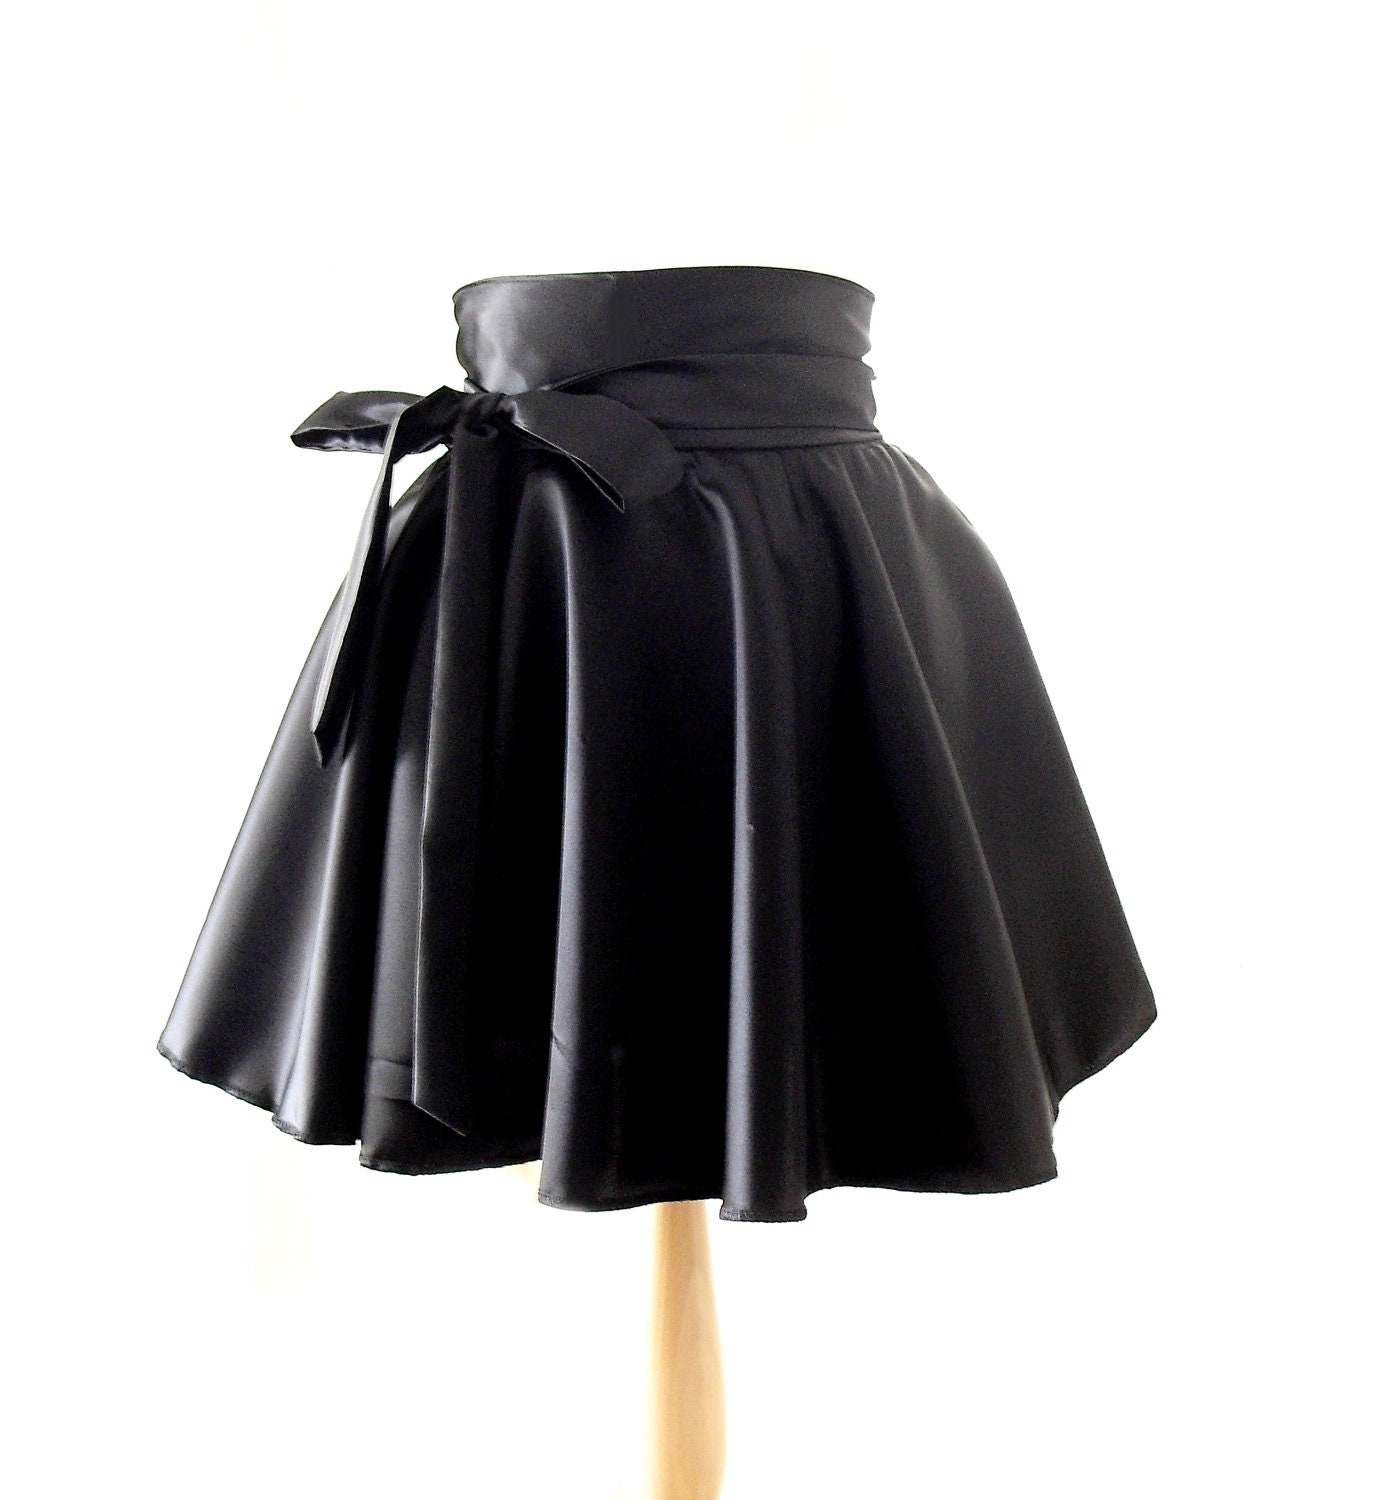 Wet Look Skater Skirt High Waisted Skirt Satin Rockabilly